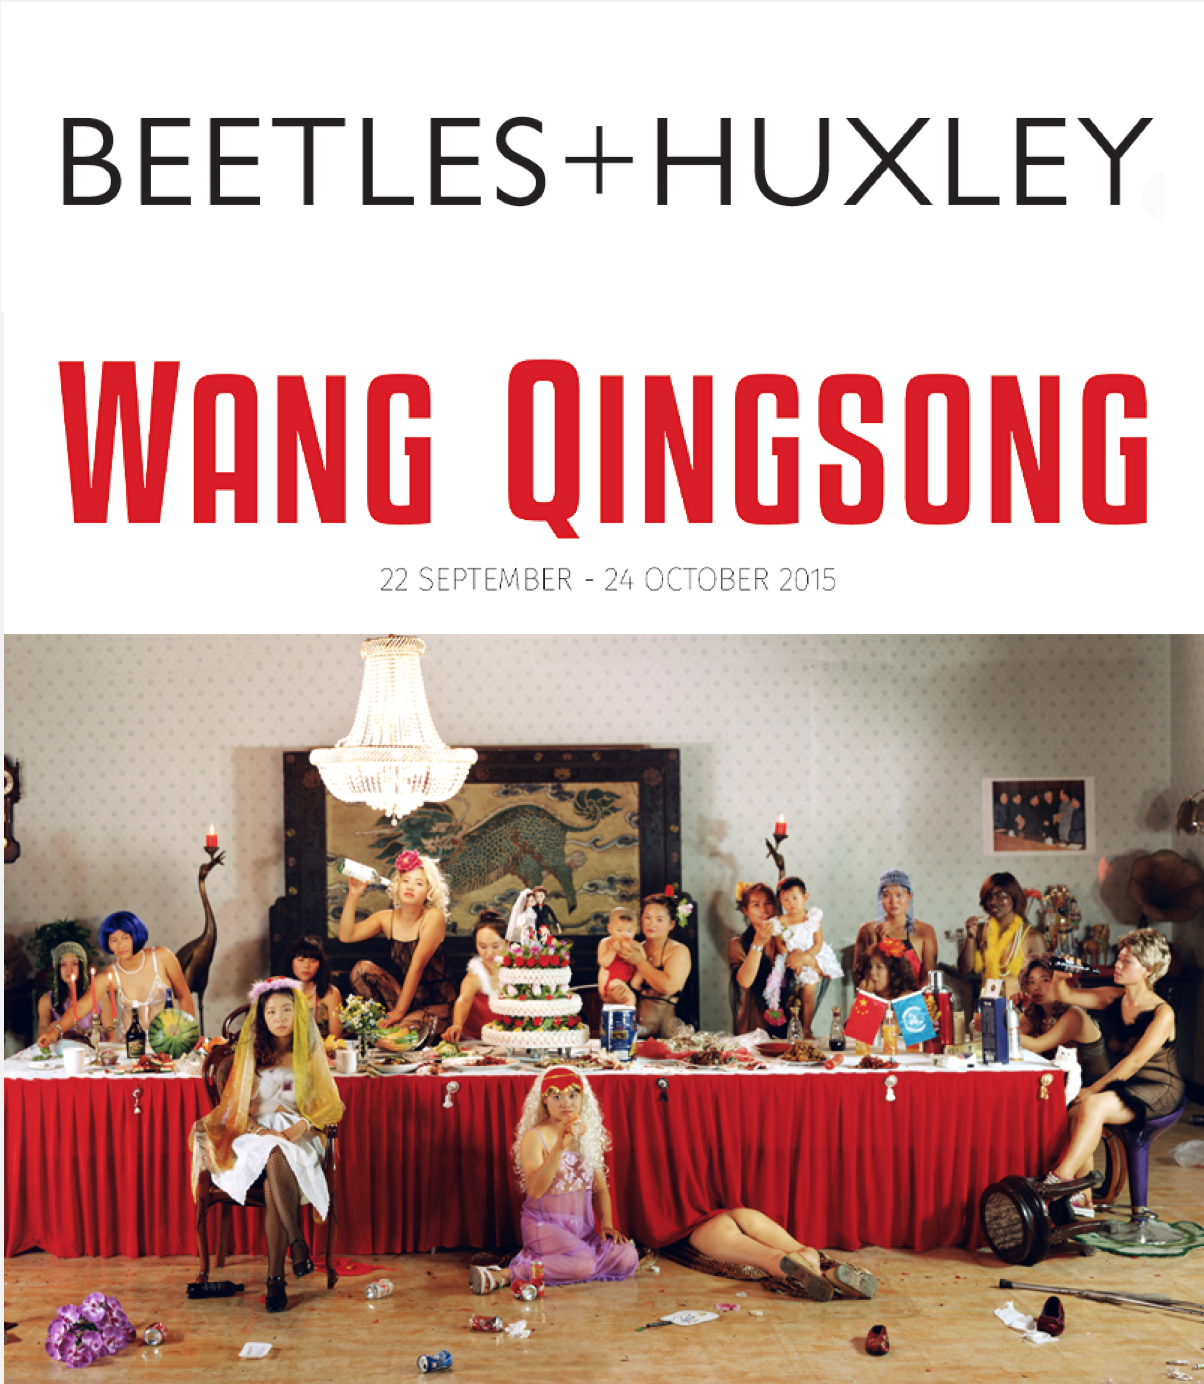 I know many fine Wang Qingsongs but it's always good to be told of another… http://t.co/Jq5aB6RvWn